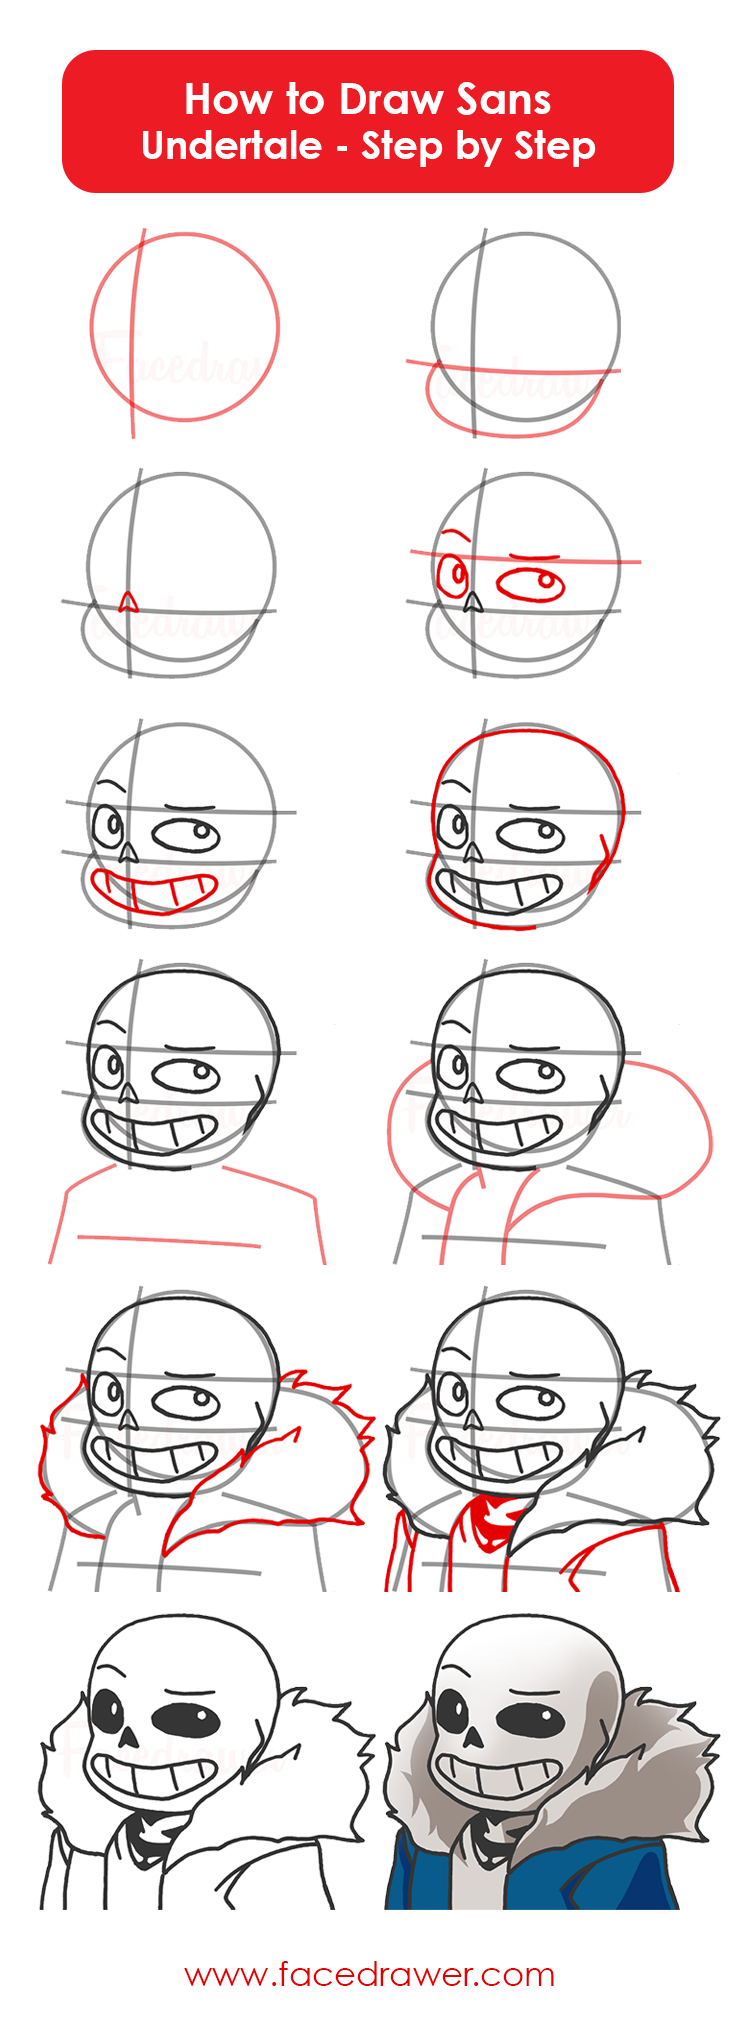 5 Astounding Exercises To Get Better At Drawing Ideas How To Draw Sans Easy Drawings Undertale